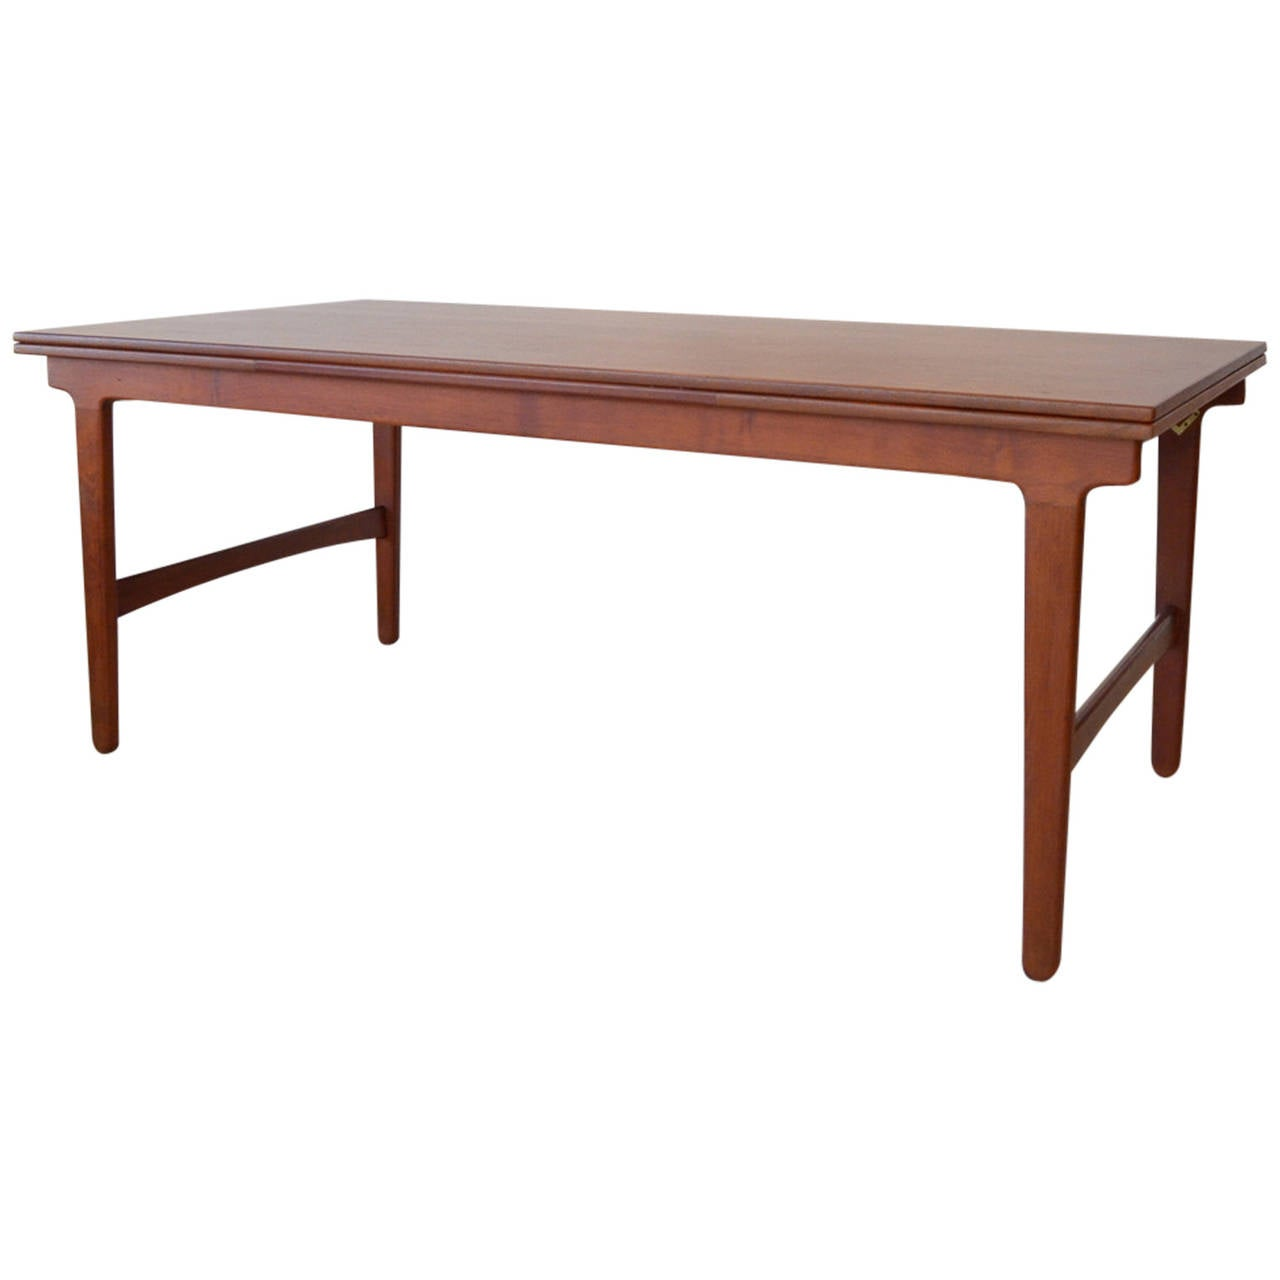 Hans wegner for a p stolen sliding leaf dining table at for Dining room table replacement leaf